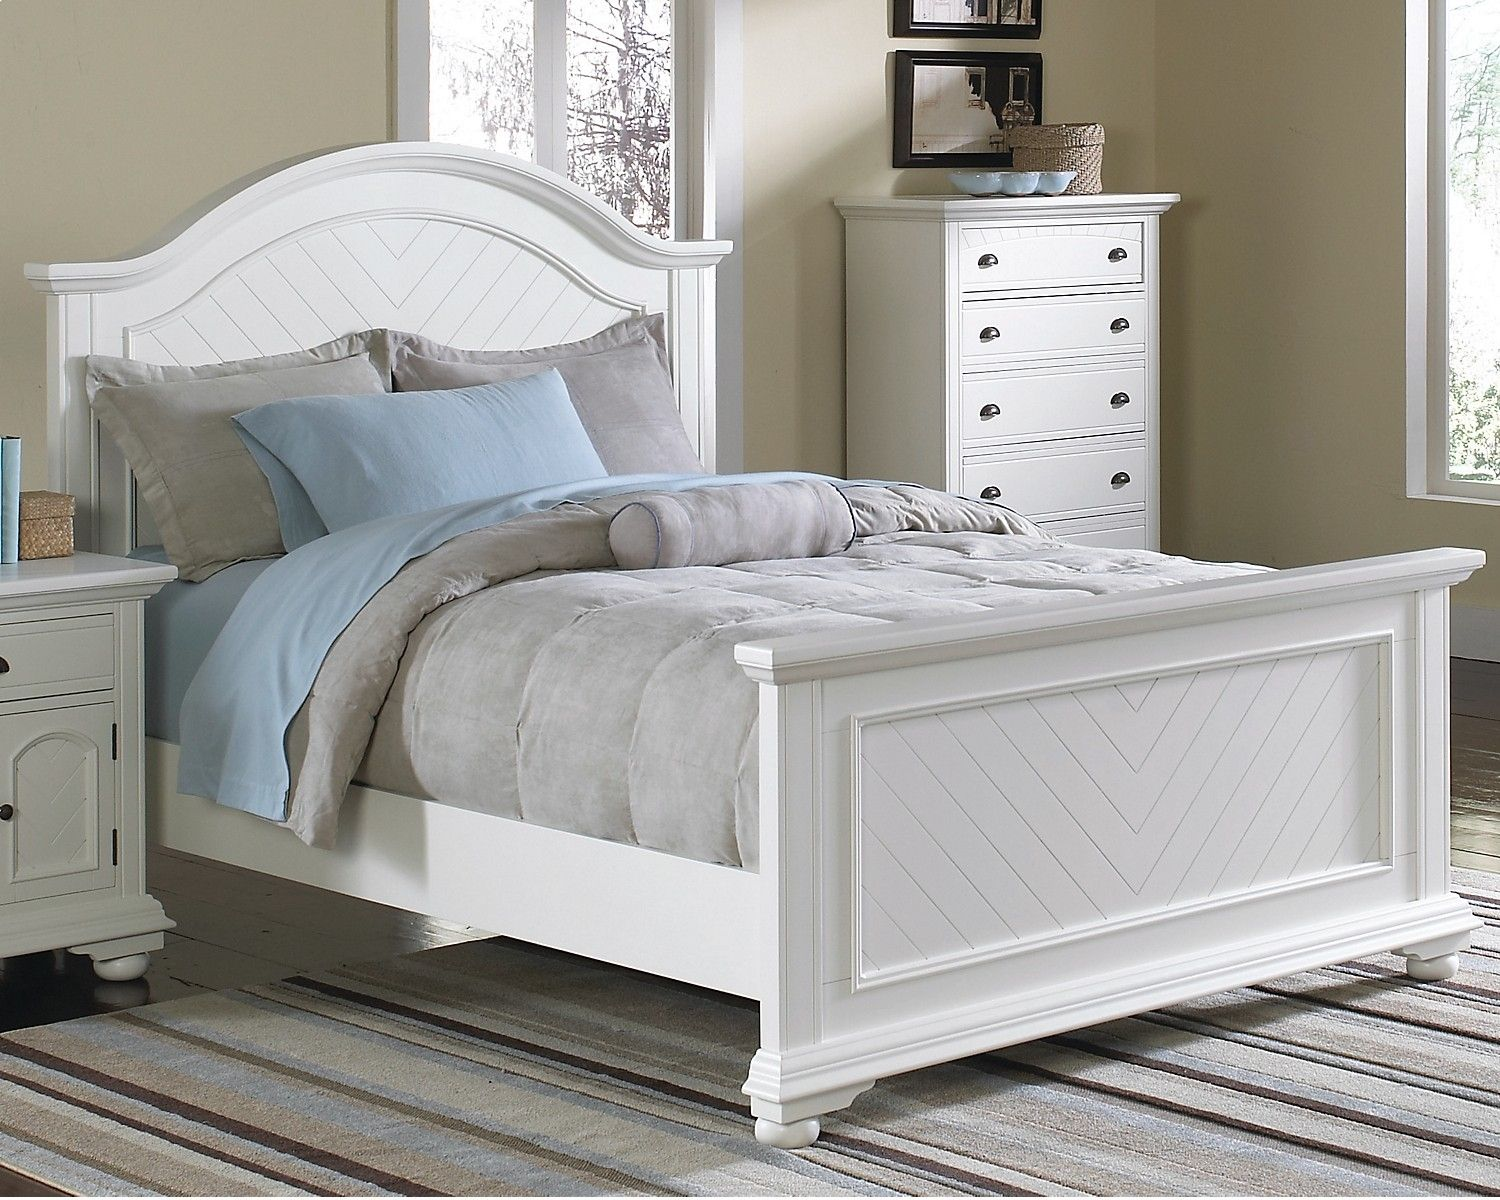 Types Of Beds Queen Panel Bed White Bedroom Set Furniture